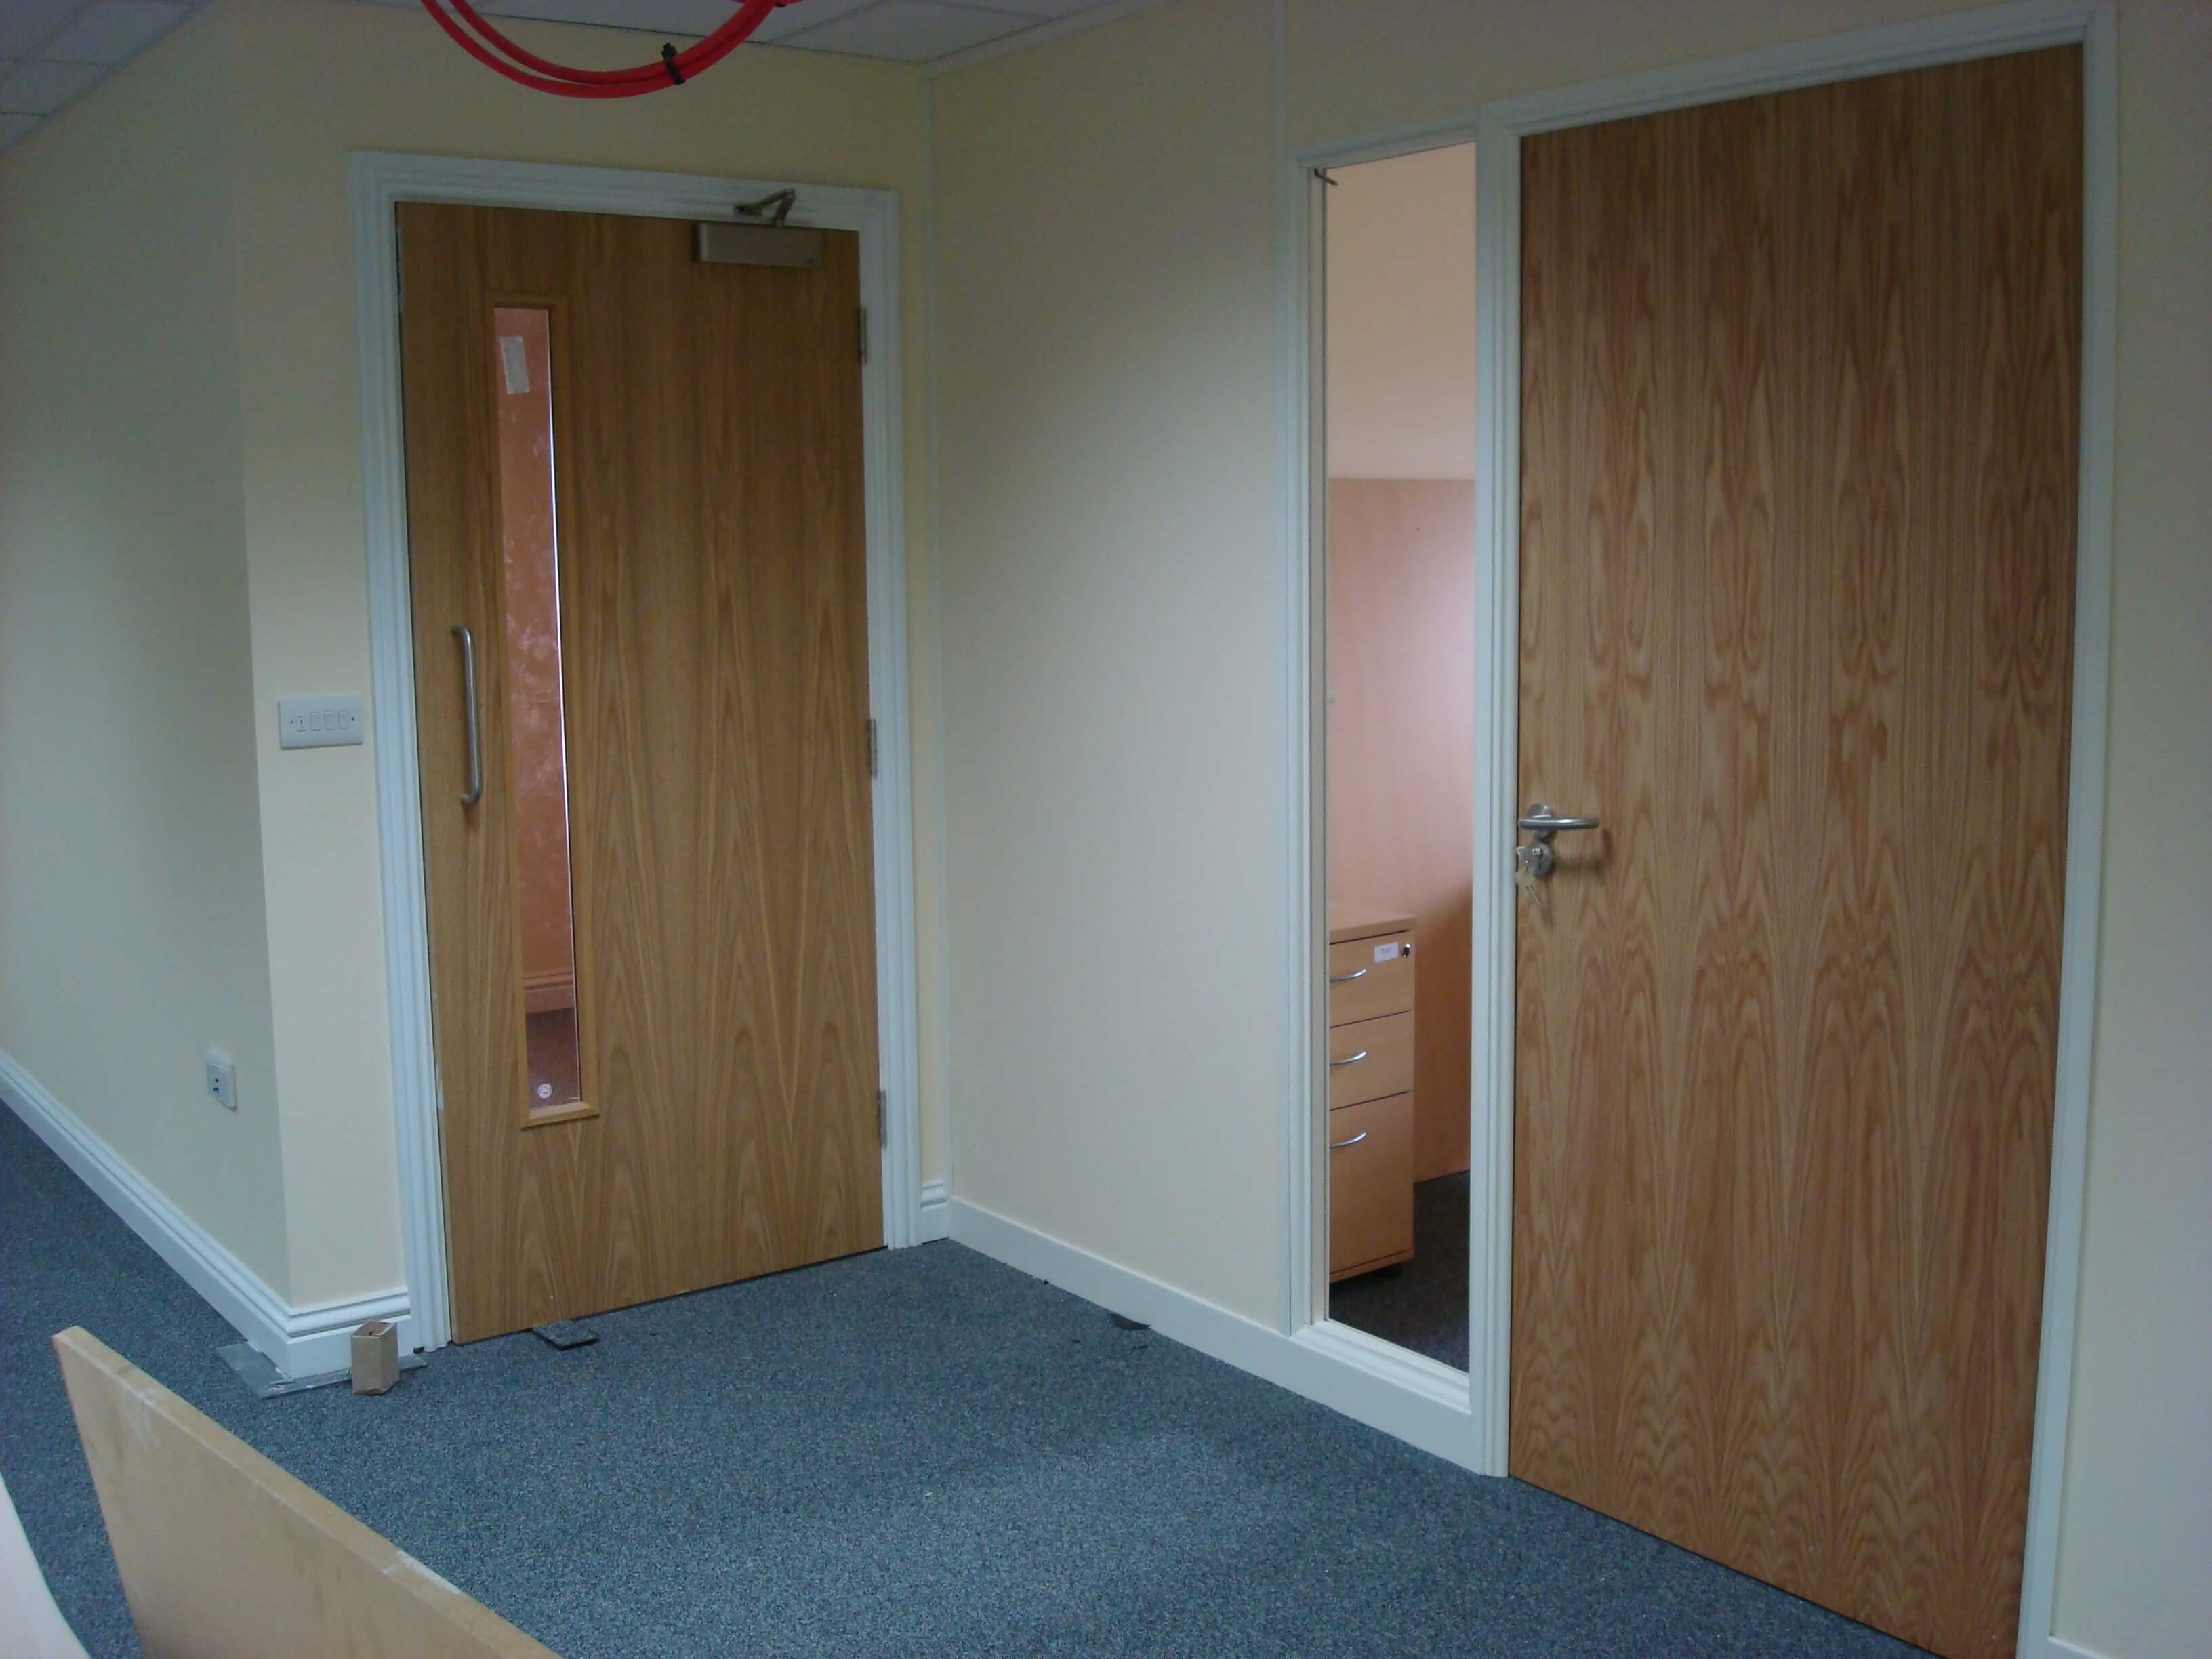 Disabled access door into main office